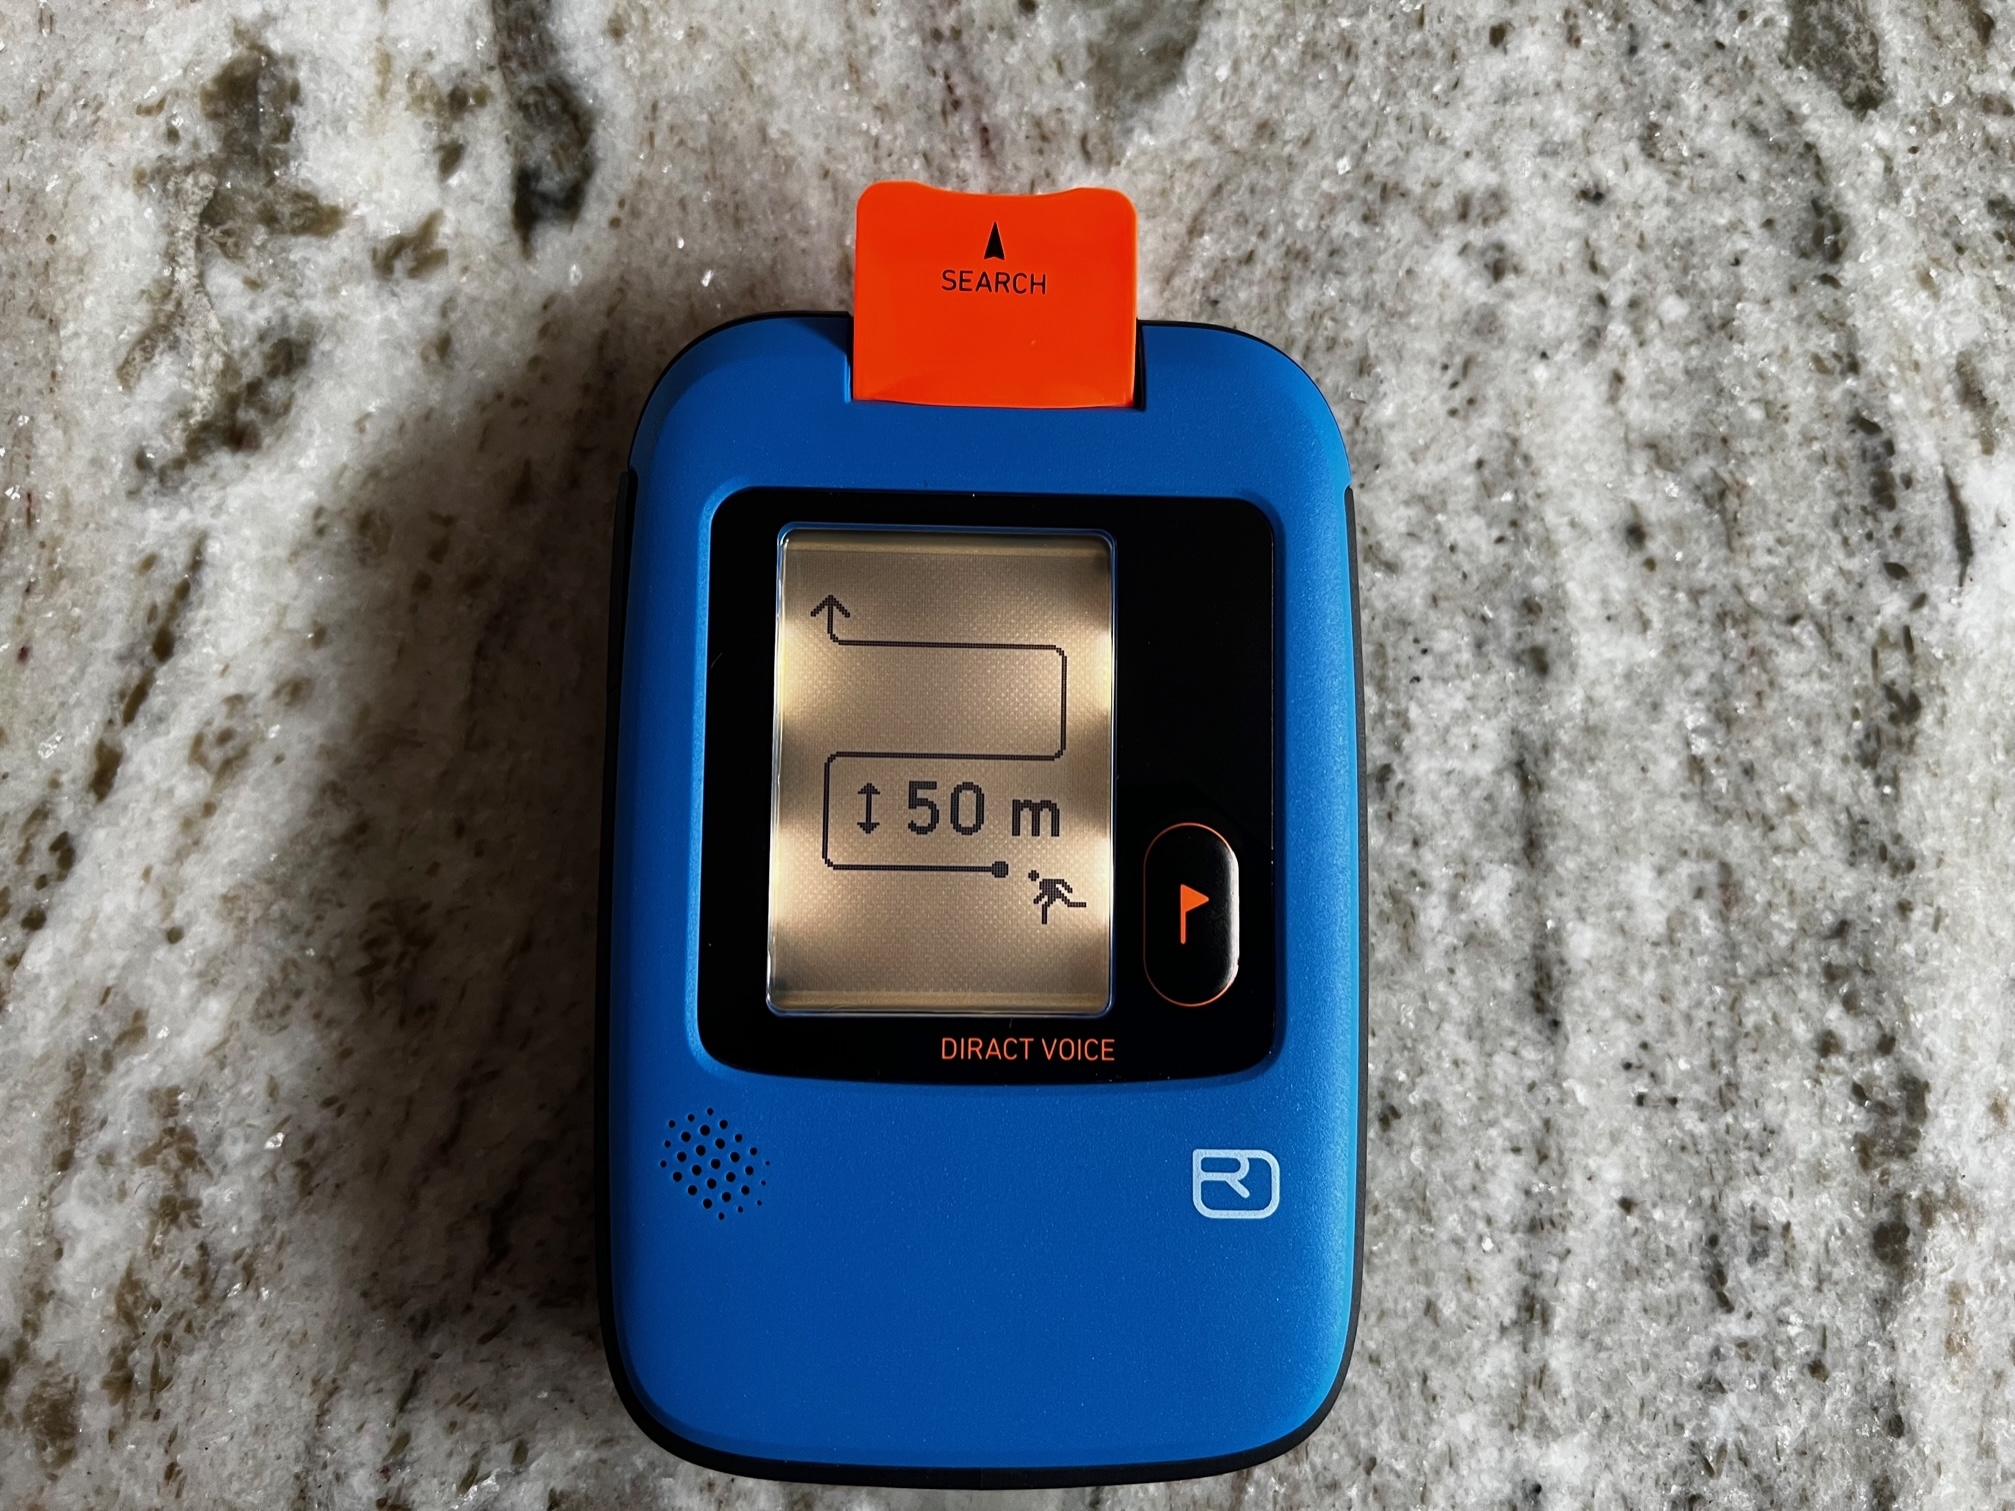 Ortovox Diract Voice Avalanche Transceiver Review